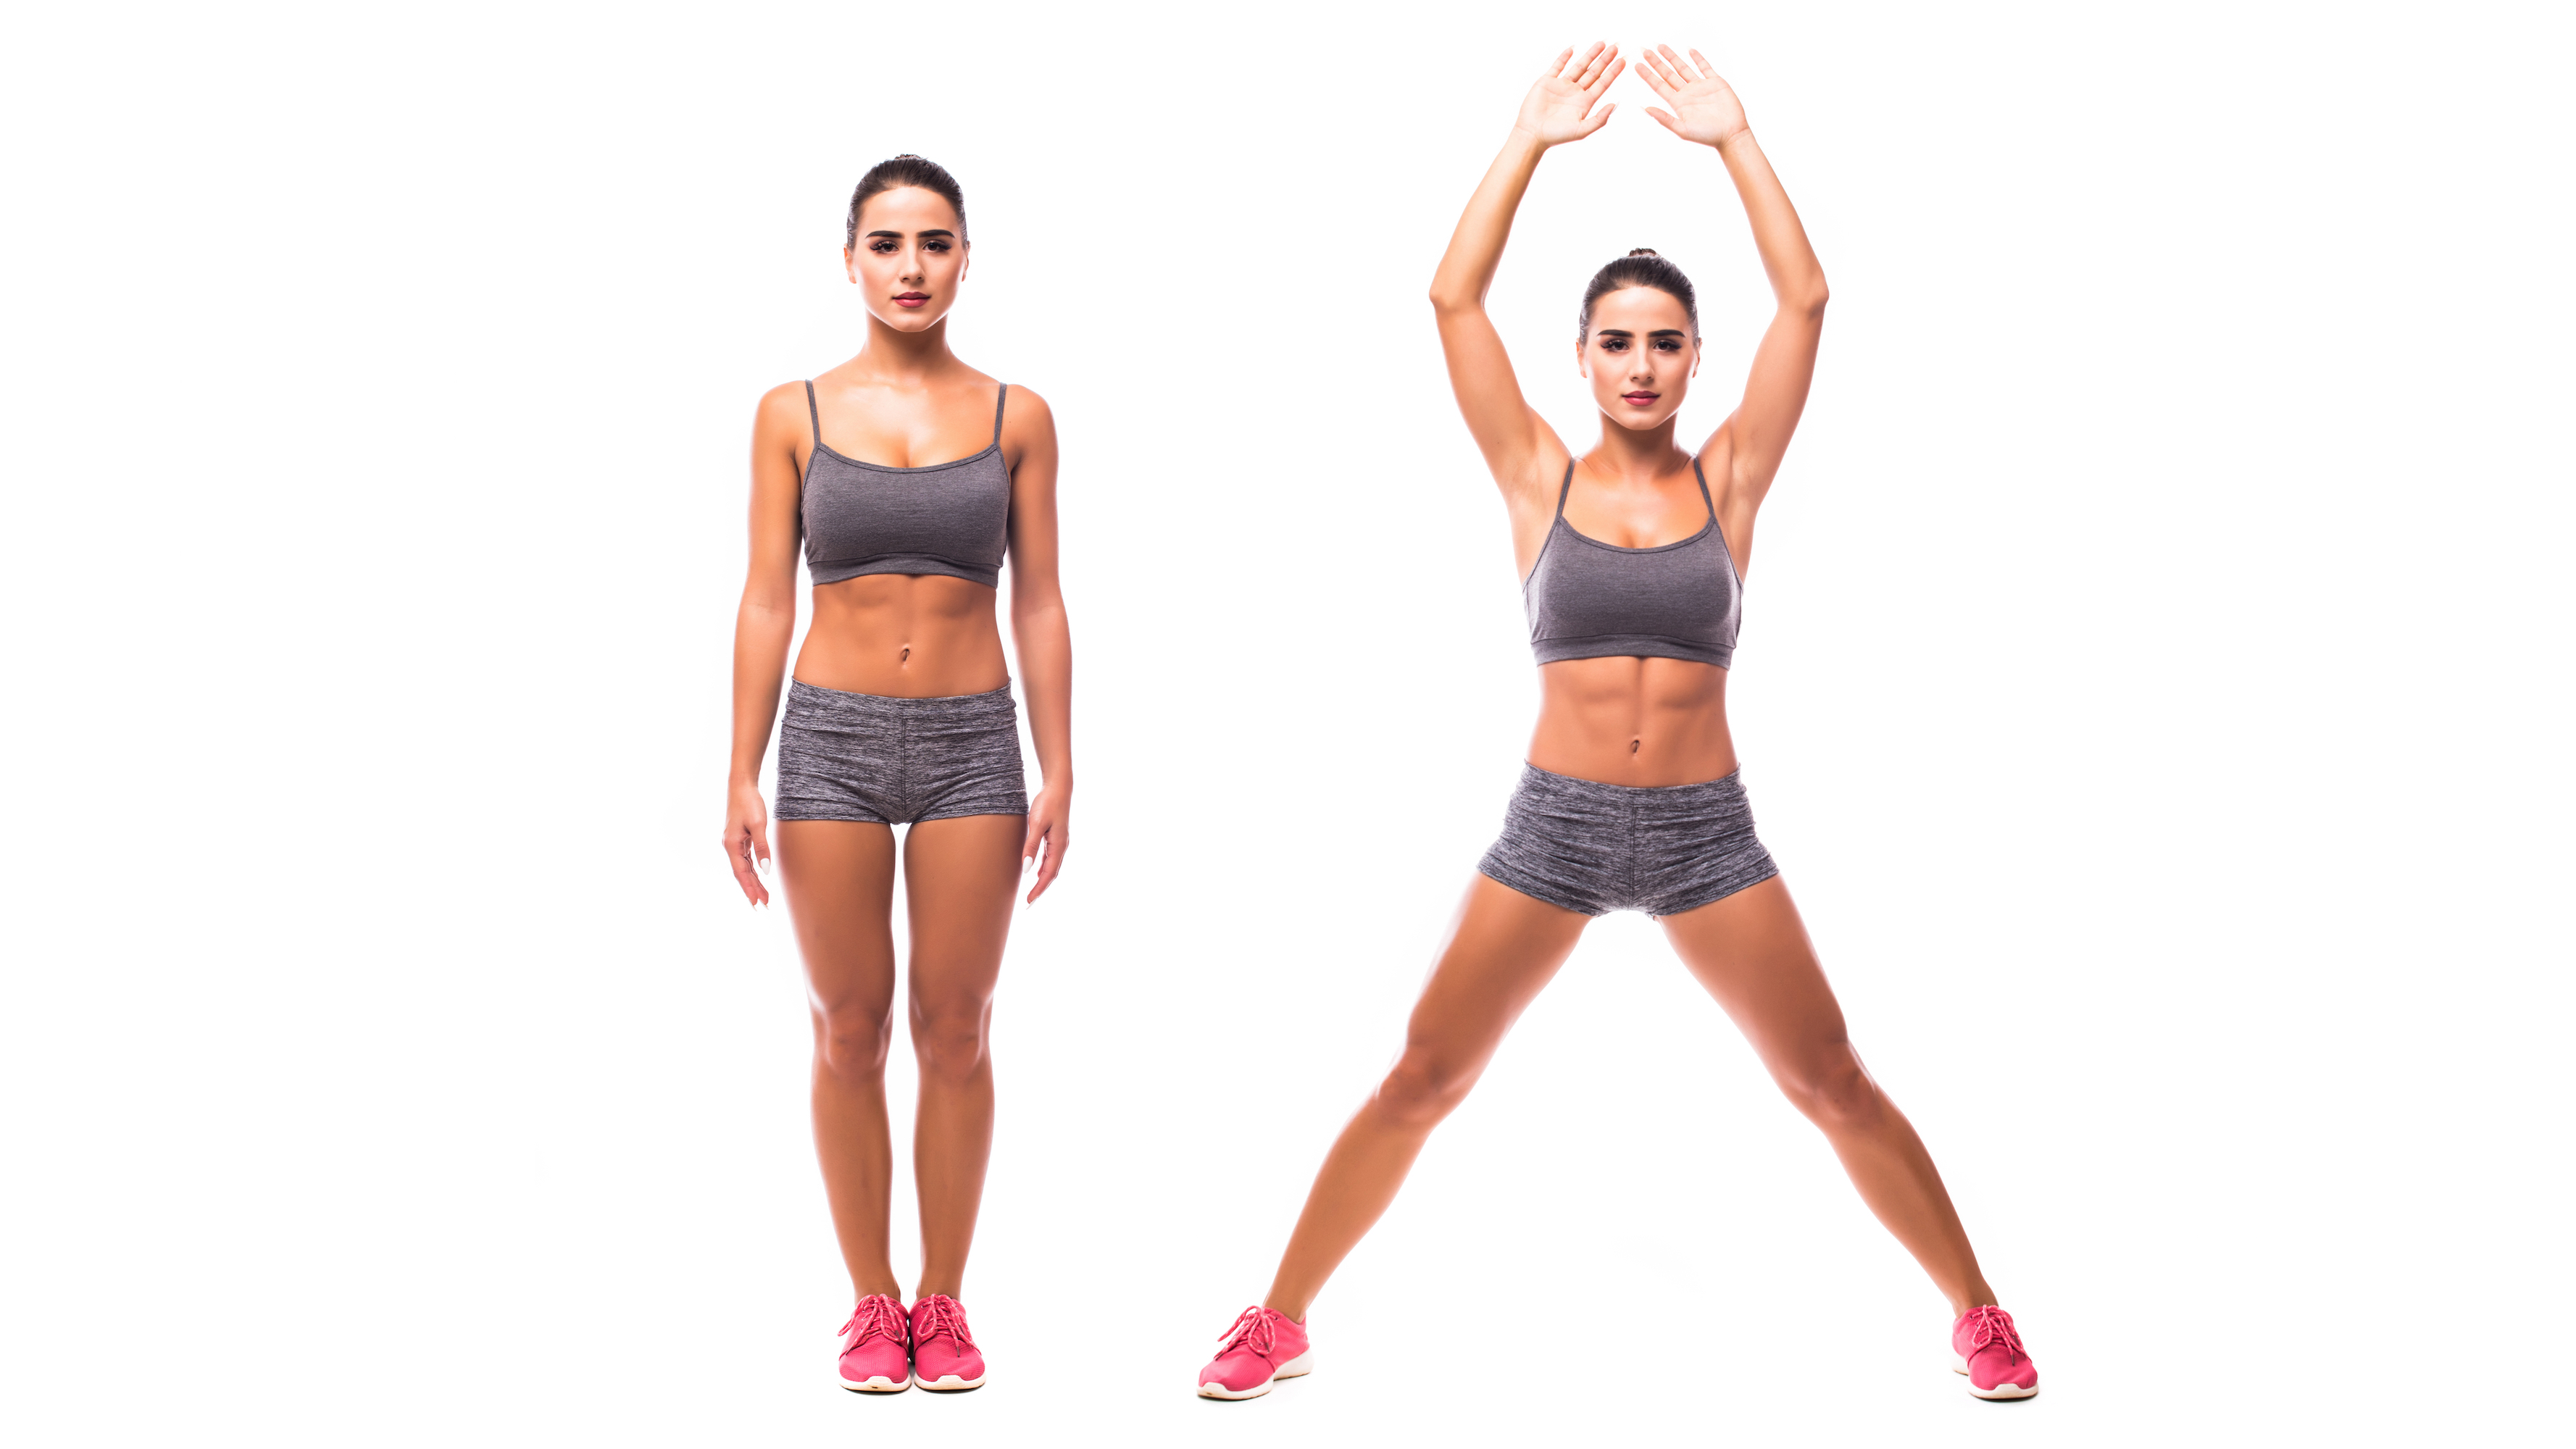 10 Cardio Moves You Can Do At Home